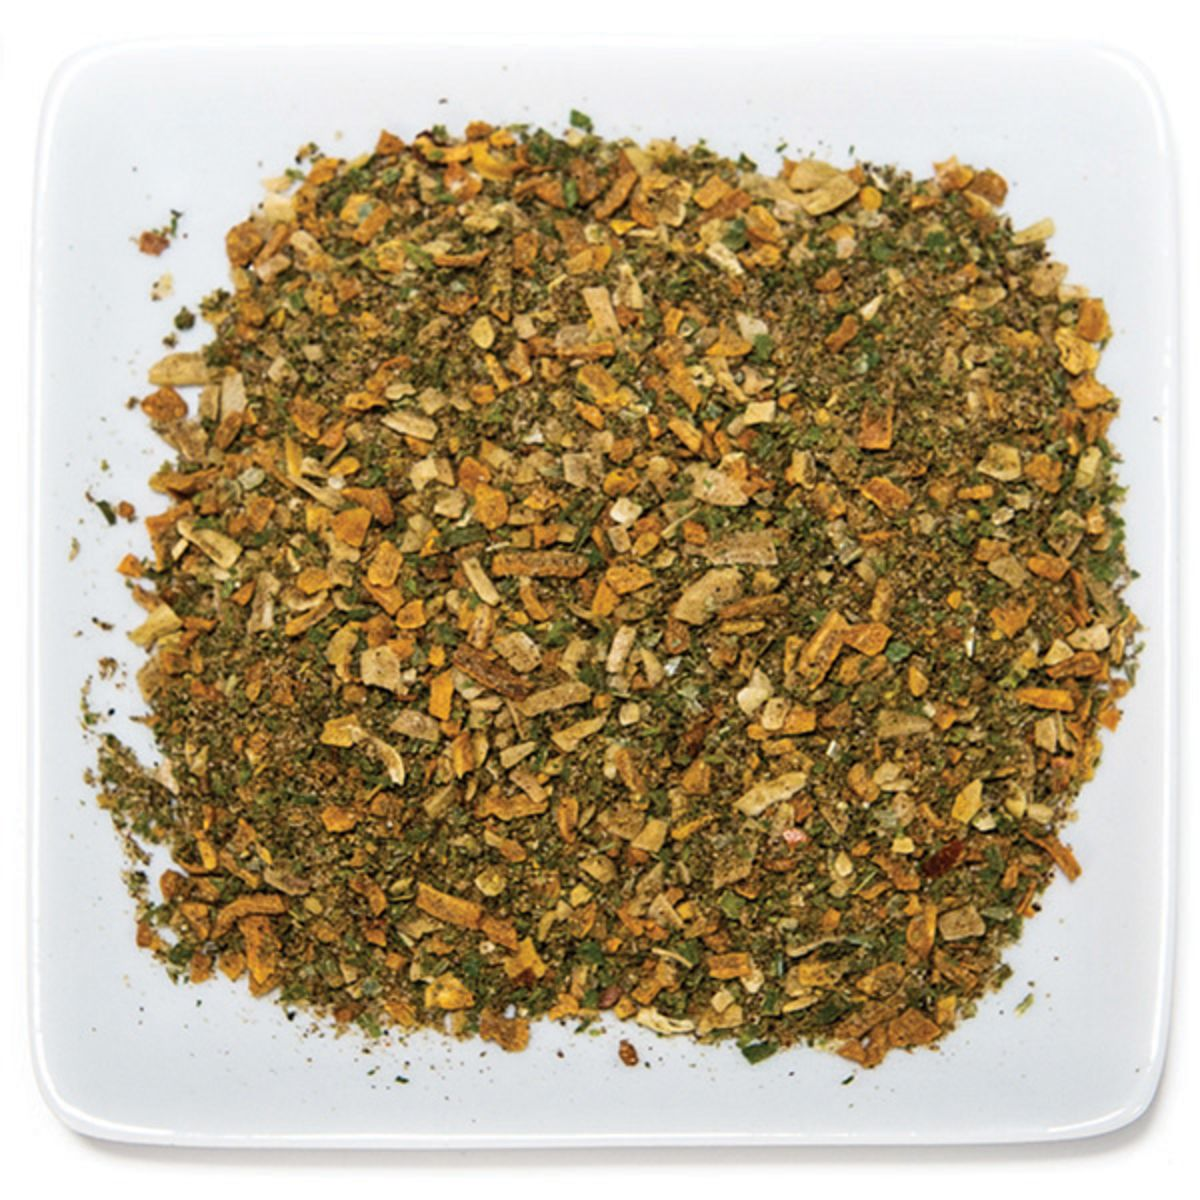 Toasted Onion Herb, 4 ozs by weight [3/4 cup by volume]